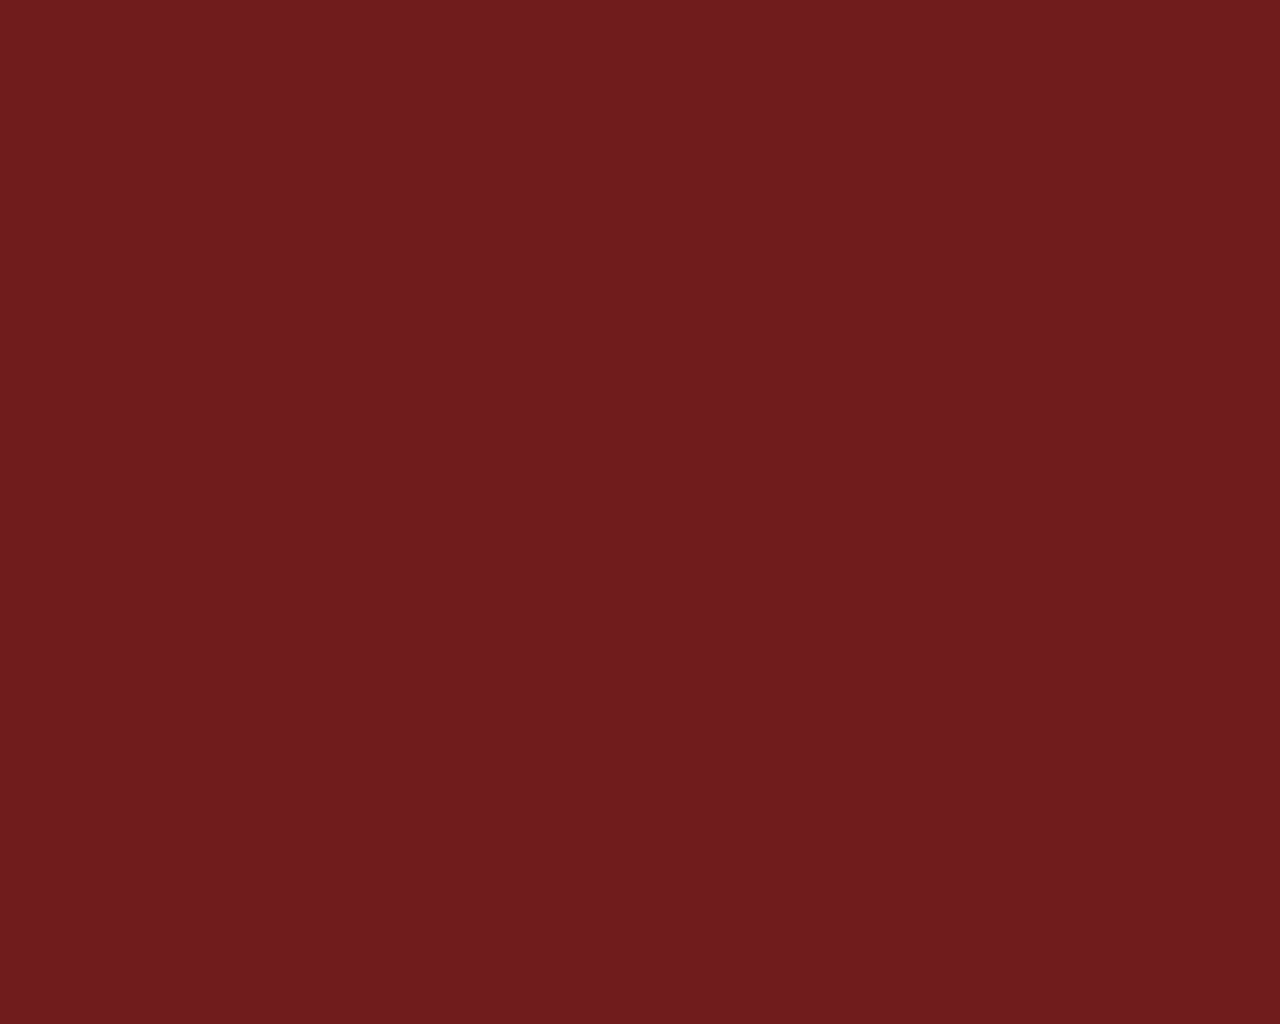 1280x1024 Prune Solid Color Background